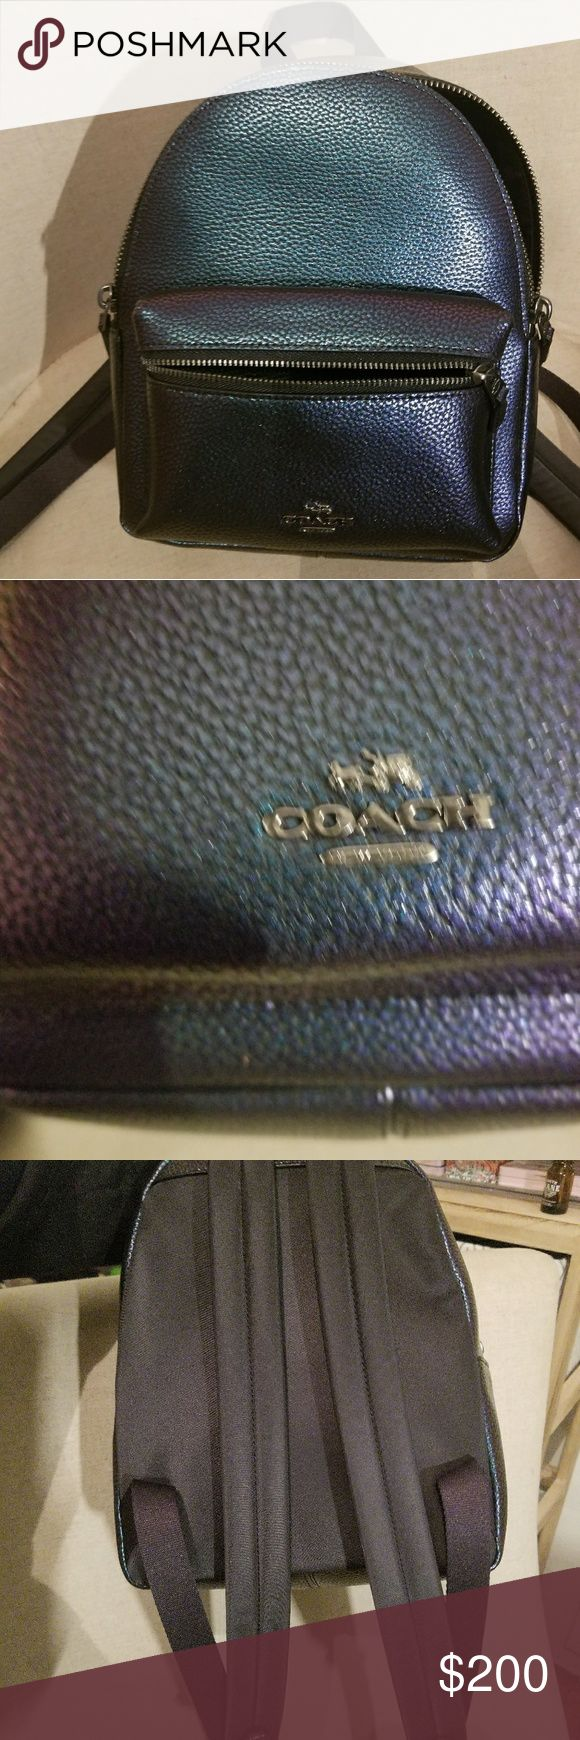 Authentic Coach hologram mini backpack Gorgeous hologram color. Changes between a blue green and purple. Only used once for about an hour. It's basically nwot. It is a Coach mini Charlie backpack with adjustable shoulder straps to fit any size. Coach Bags Mini Bags